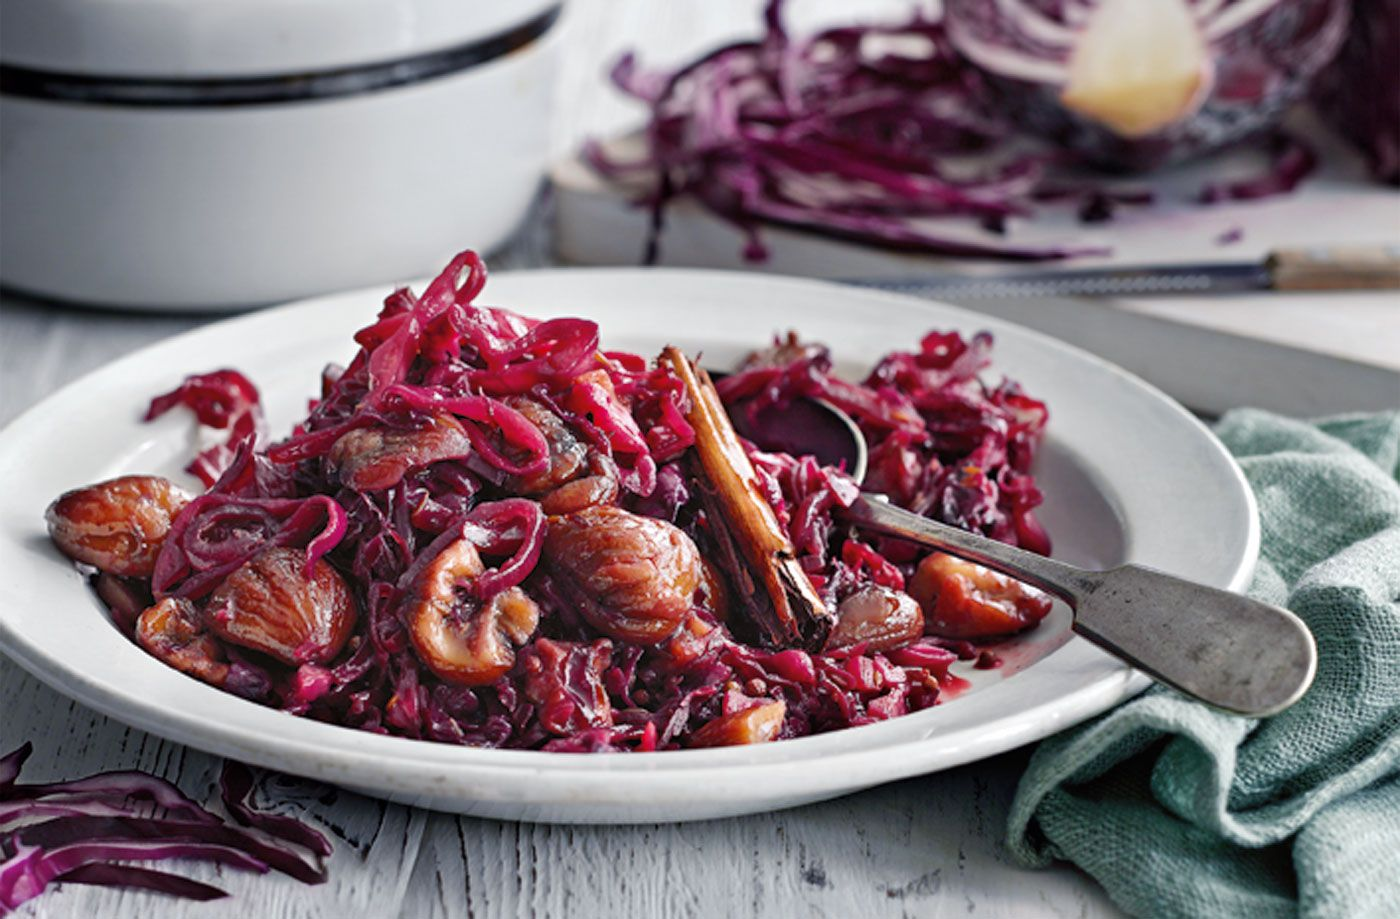 Spiced Braised Red Cabbage With Red Wine Vinegar And Chestnuts Recipe Cabbage Recipes Braised Red Cabbage Best Cabbage Recipe